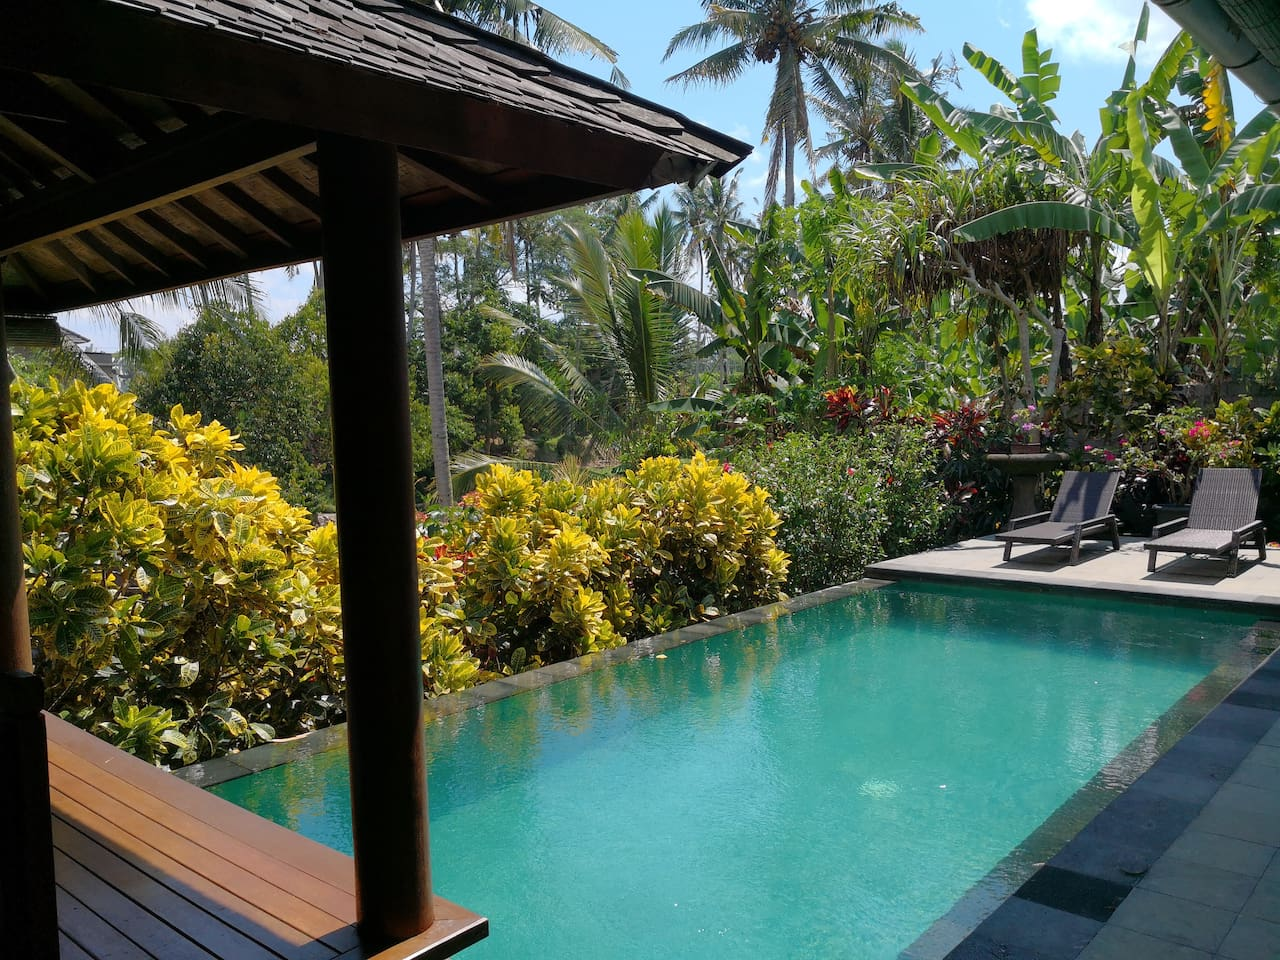 One bedroom villa with a private pool - perfect for relaxing in the sun:-)